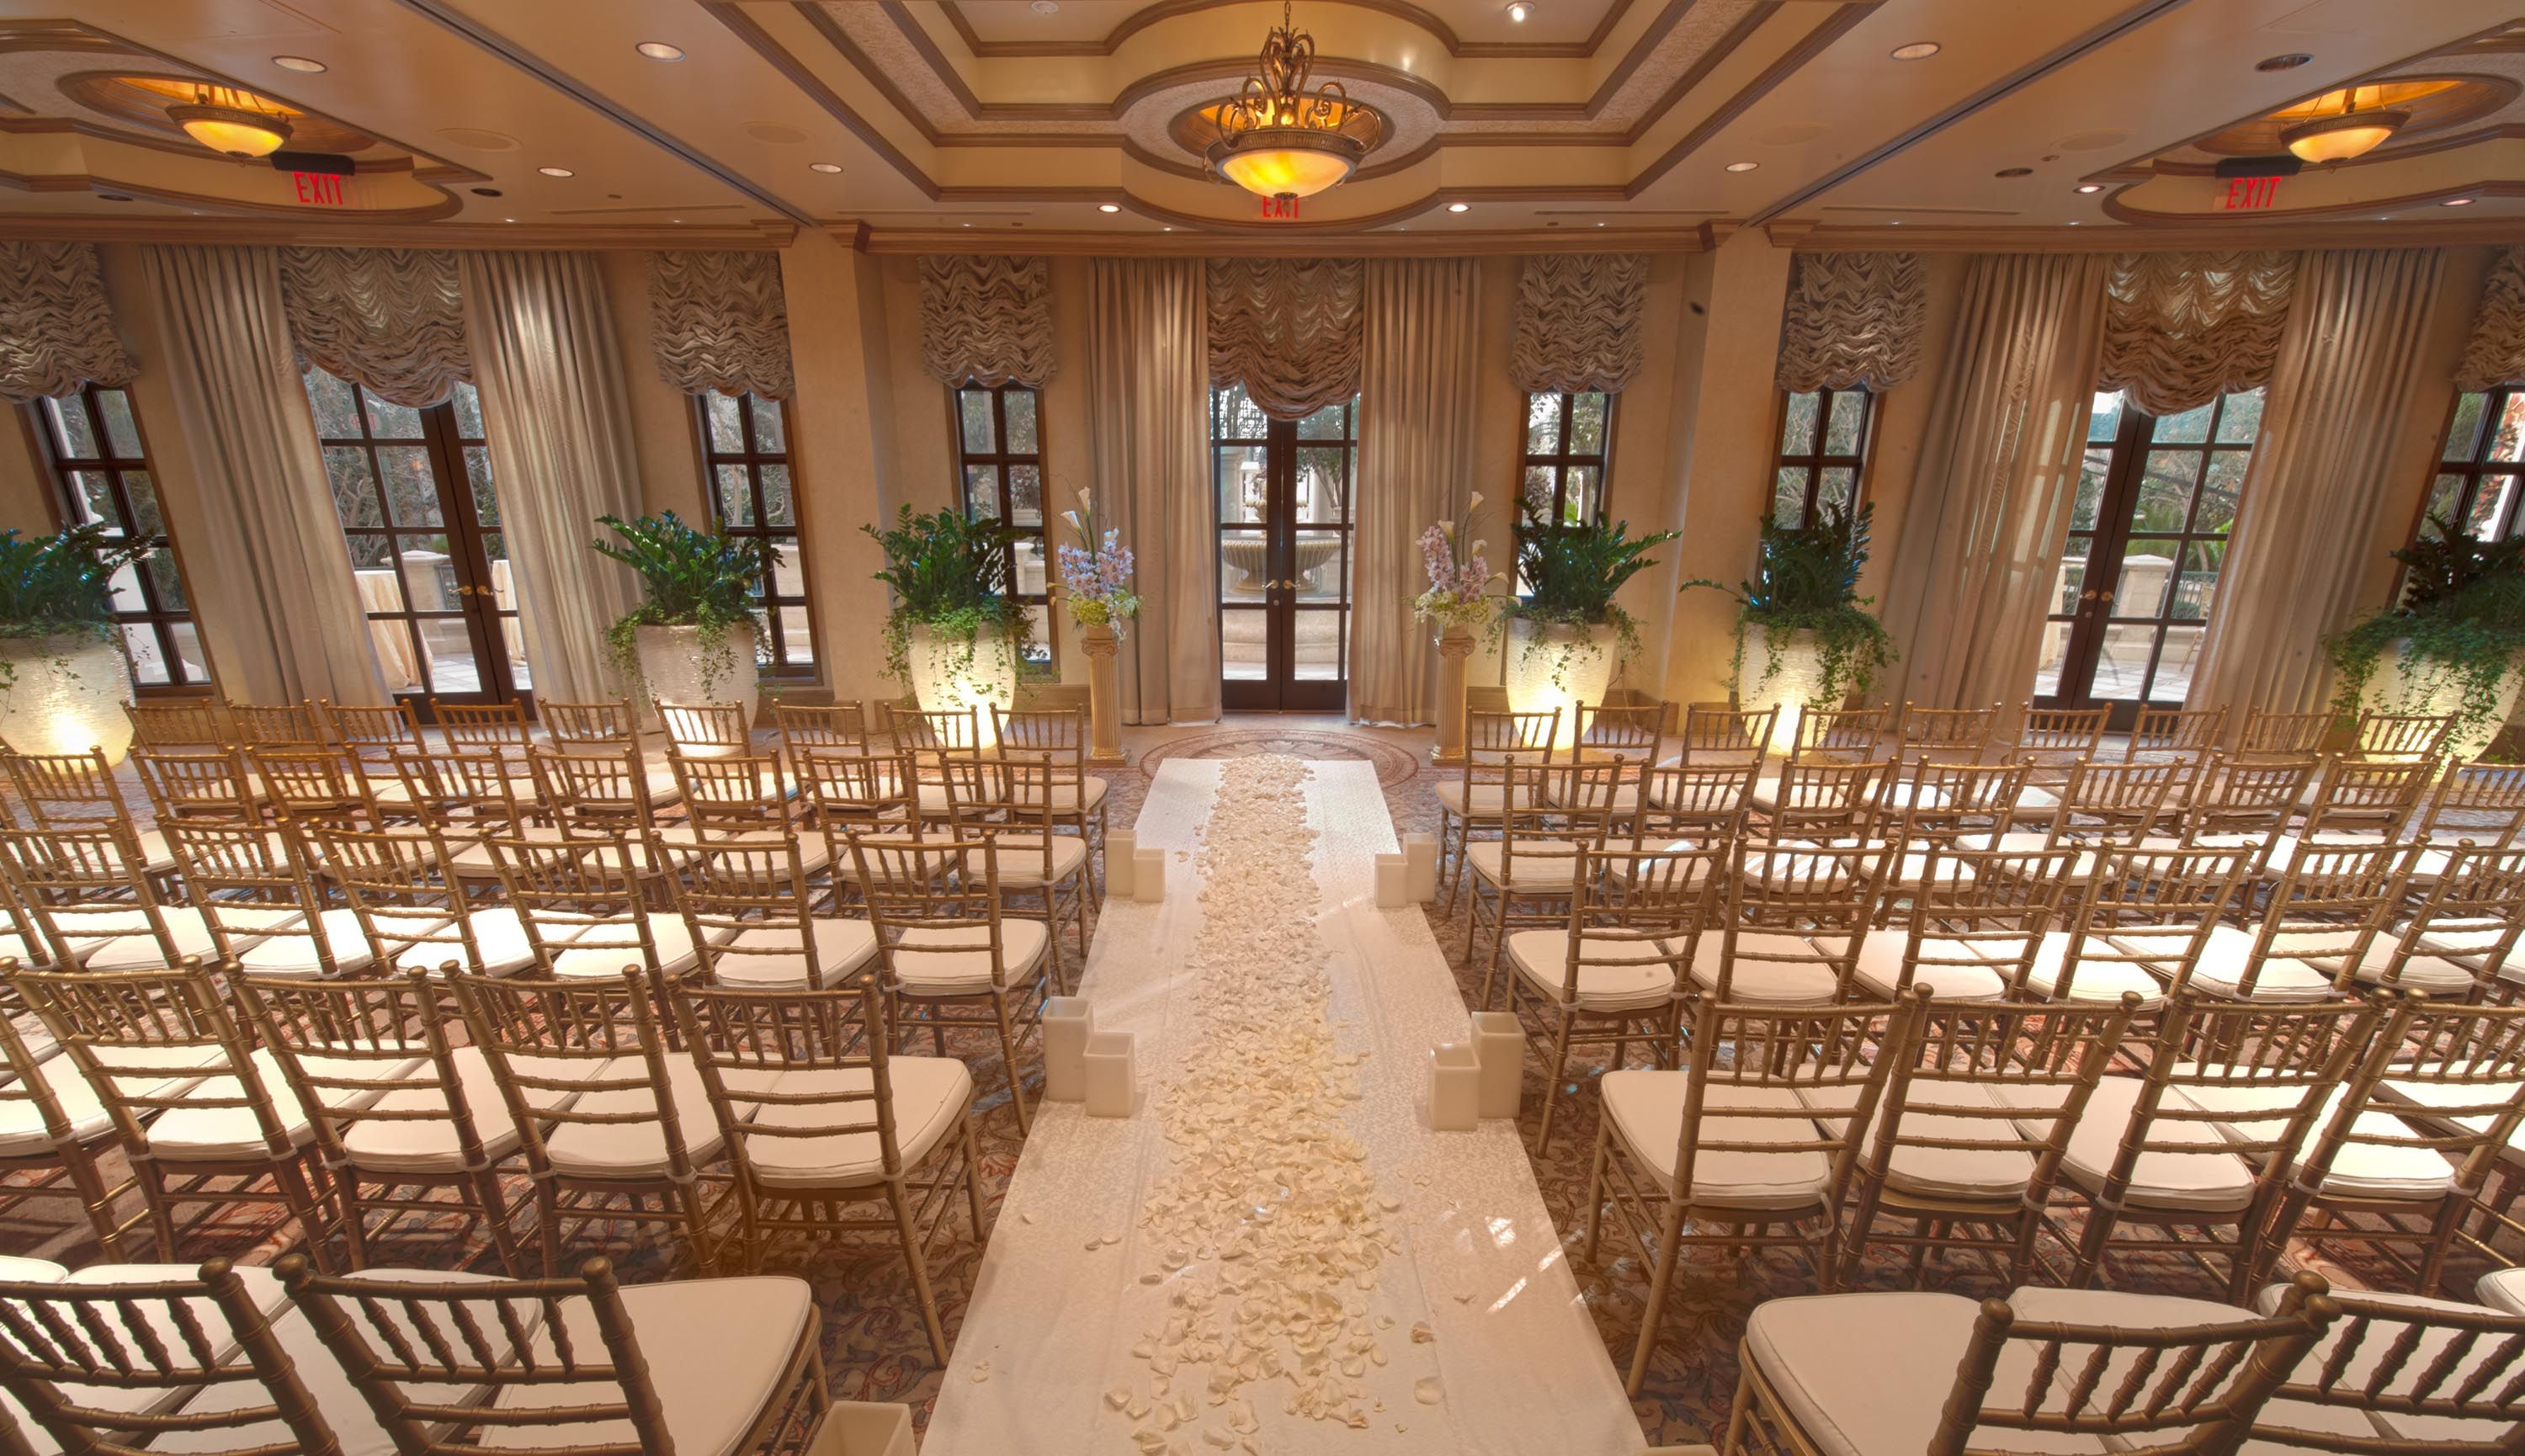 Bring The Charm Of Italy To Your Wedding Ceremony When You Plan Las Vegas Destination At Venetian We Offer Several